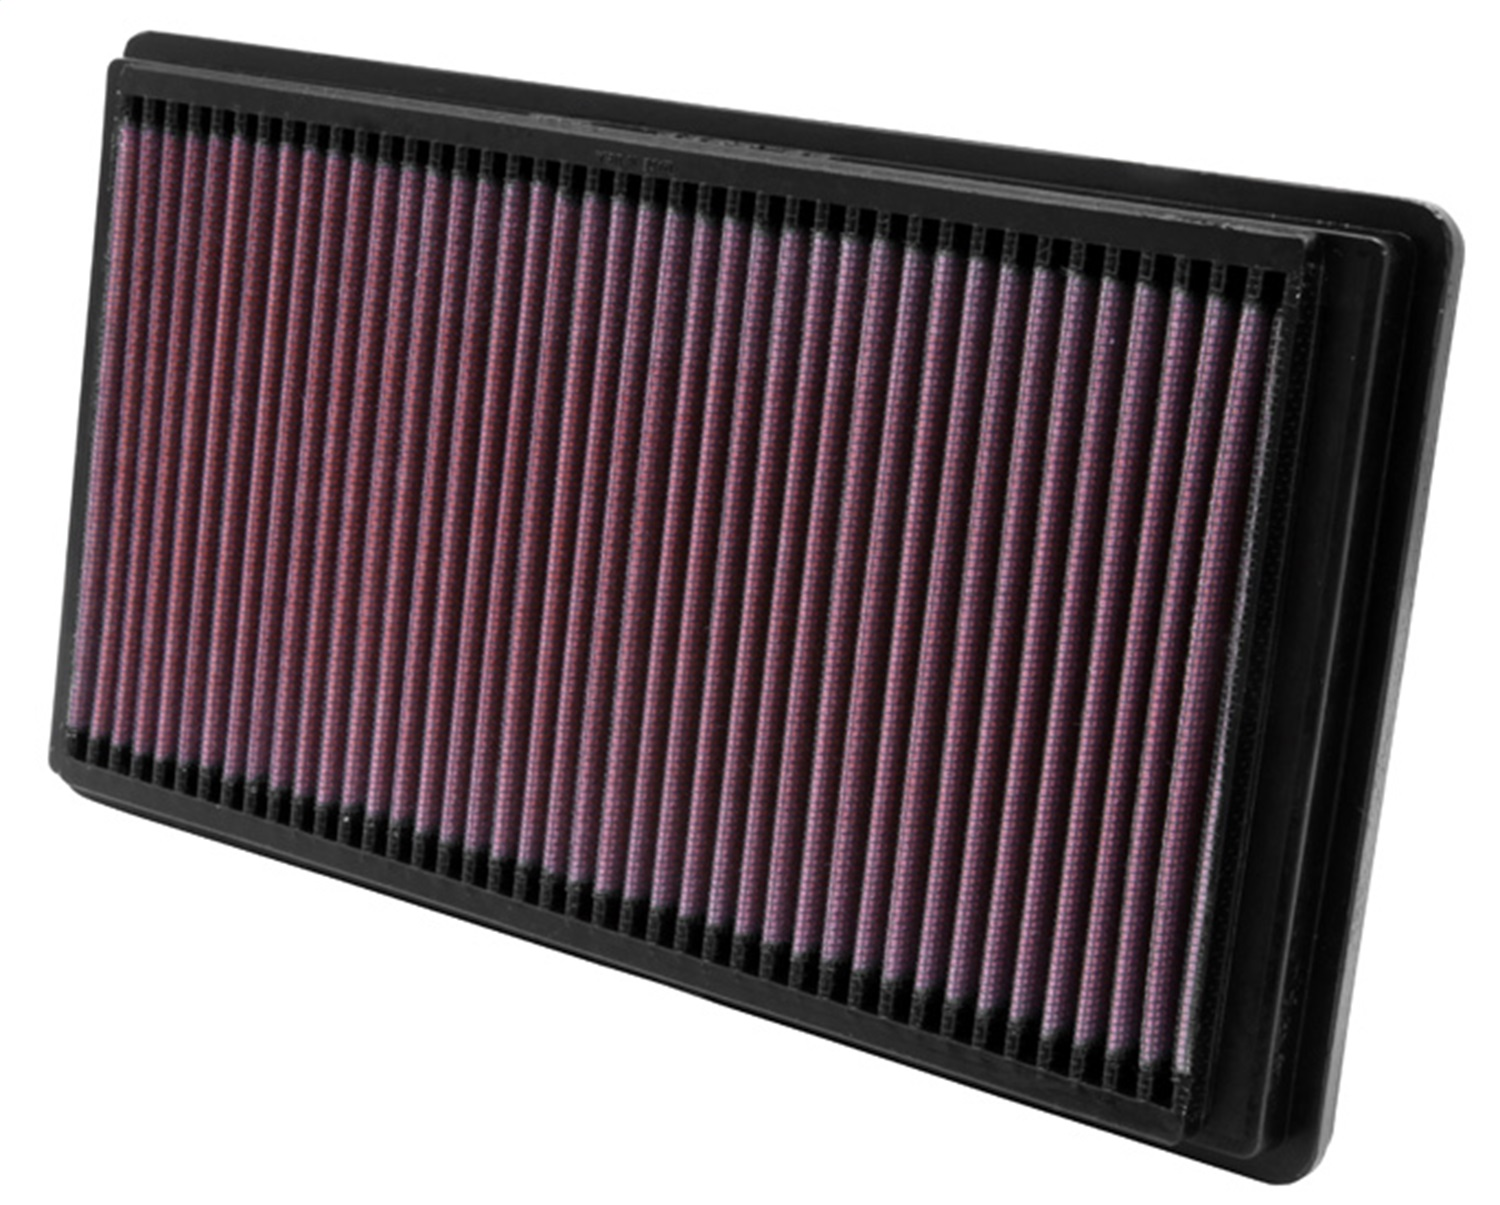 K&N Filters 33-2266 Air Filter Fits 00-06 LS S-Type Thunderbird 33-2266